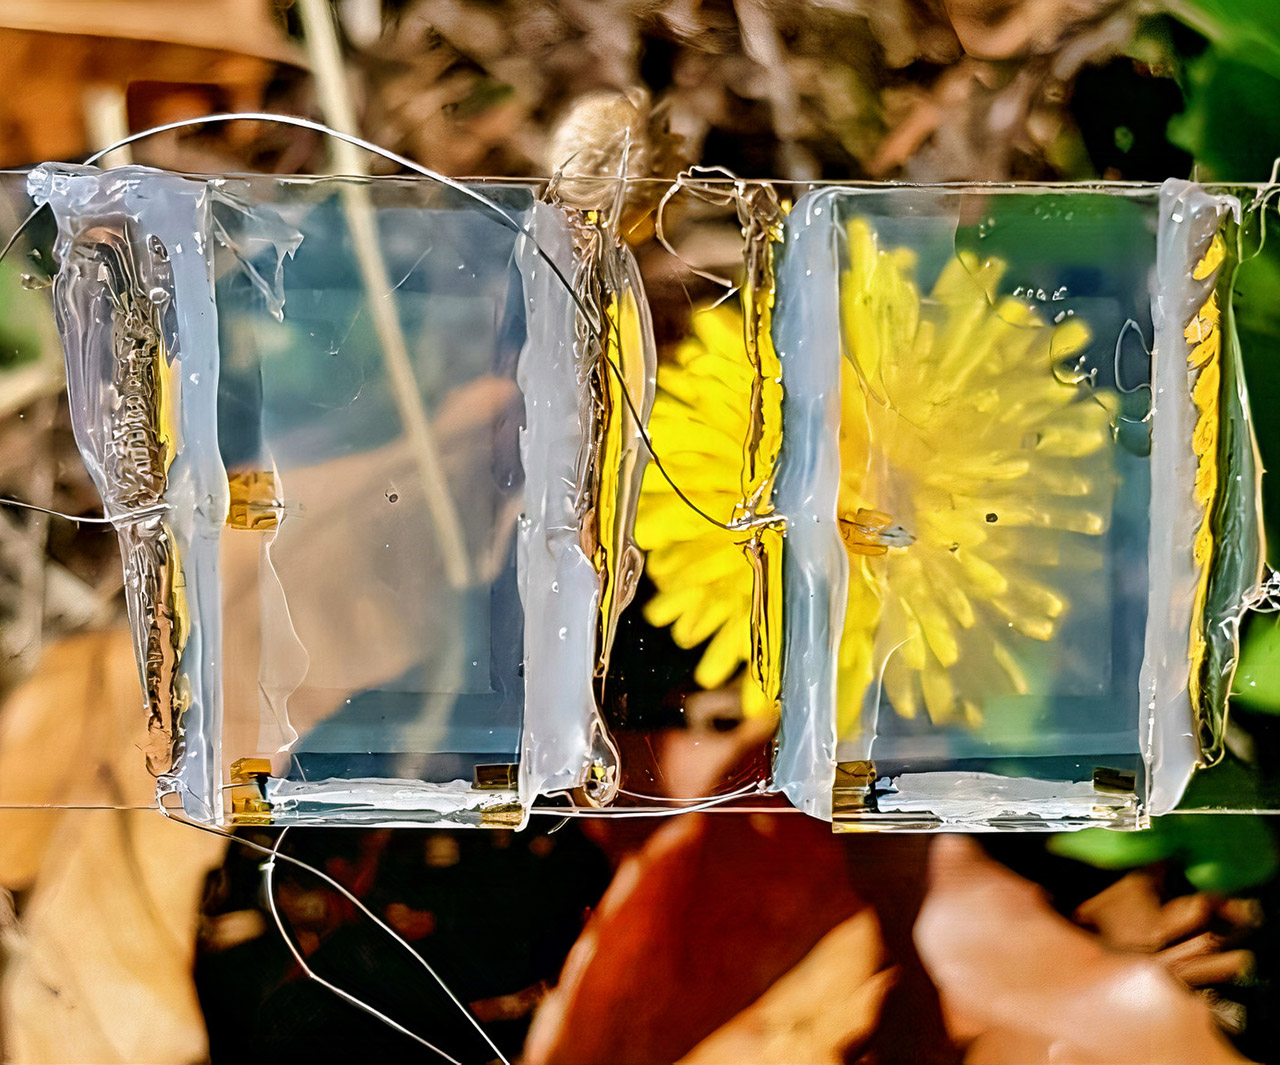 Invisible Solar Cell Electricity Generation